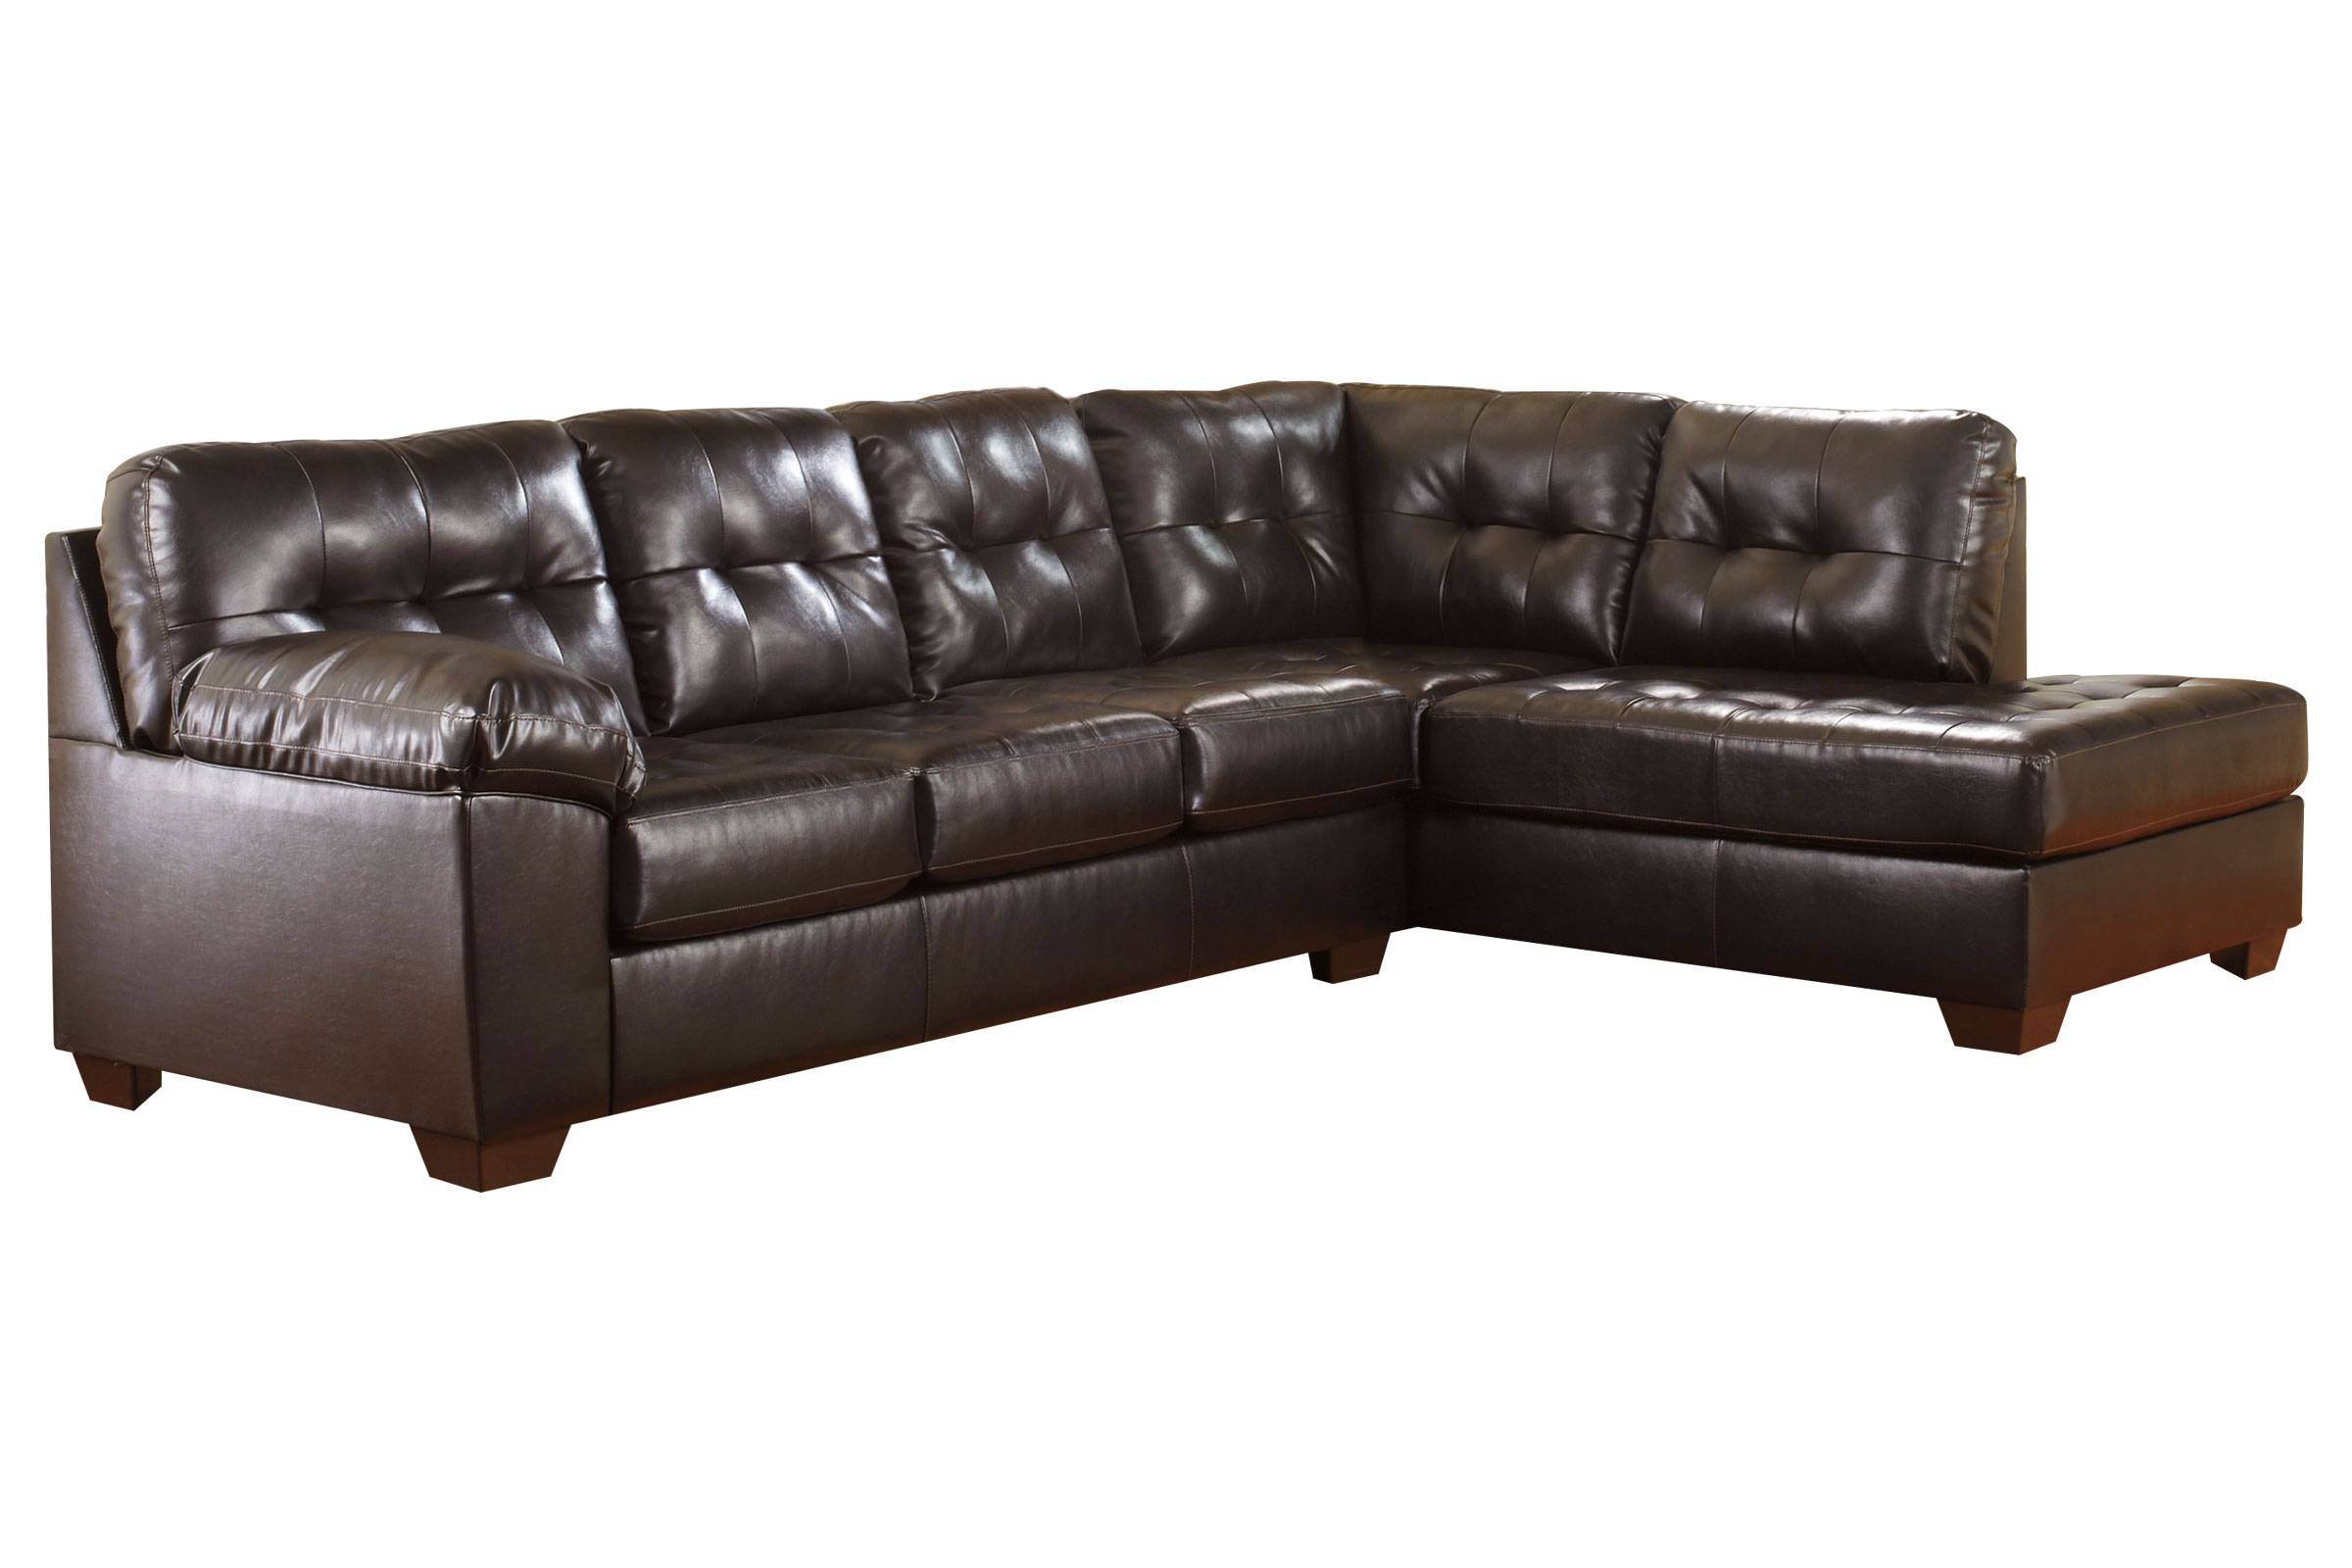 Sofas Center : Cindy Crawford Sofa Awesome Photos Ideas Reviews In Cindy Crawford Sofas (View 24 of 30)